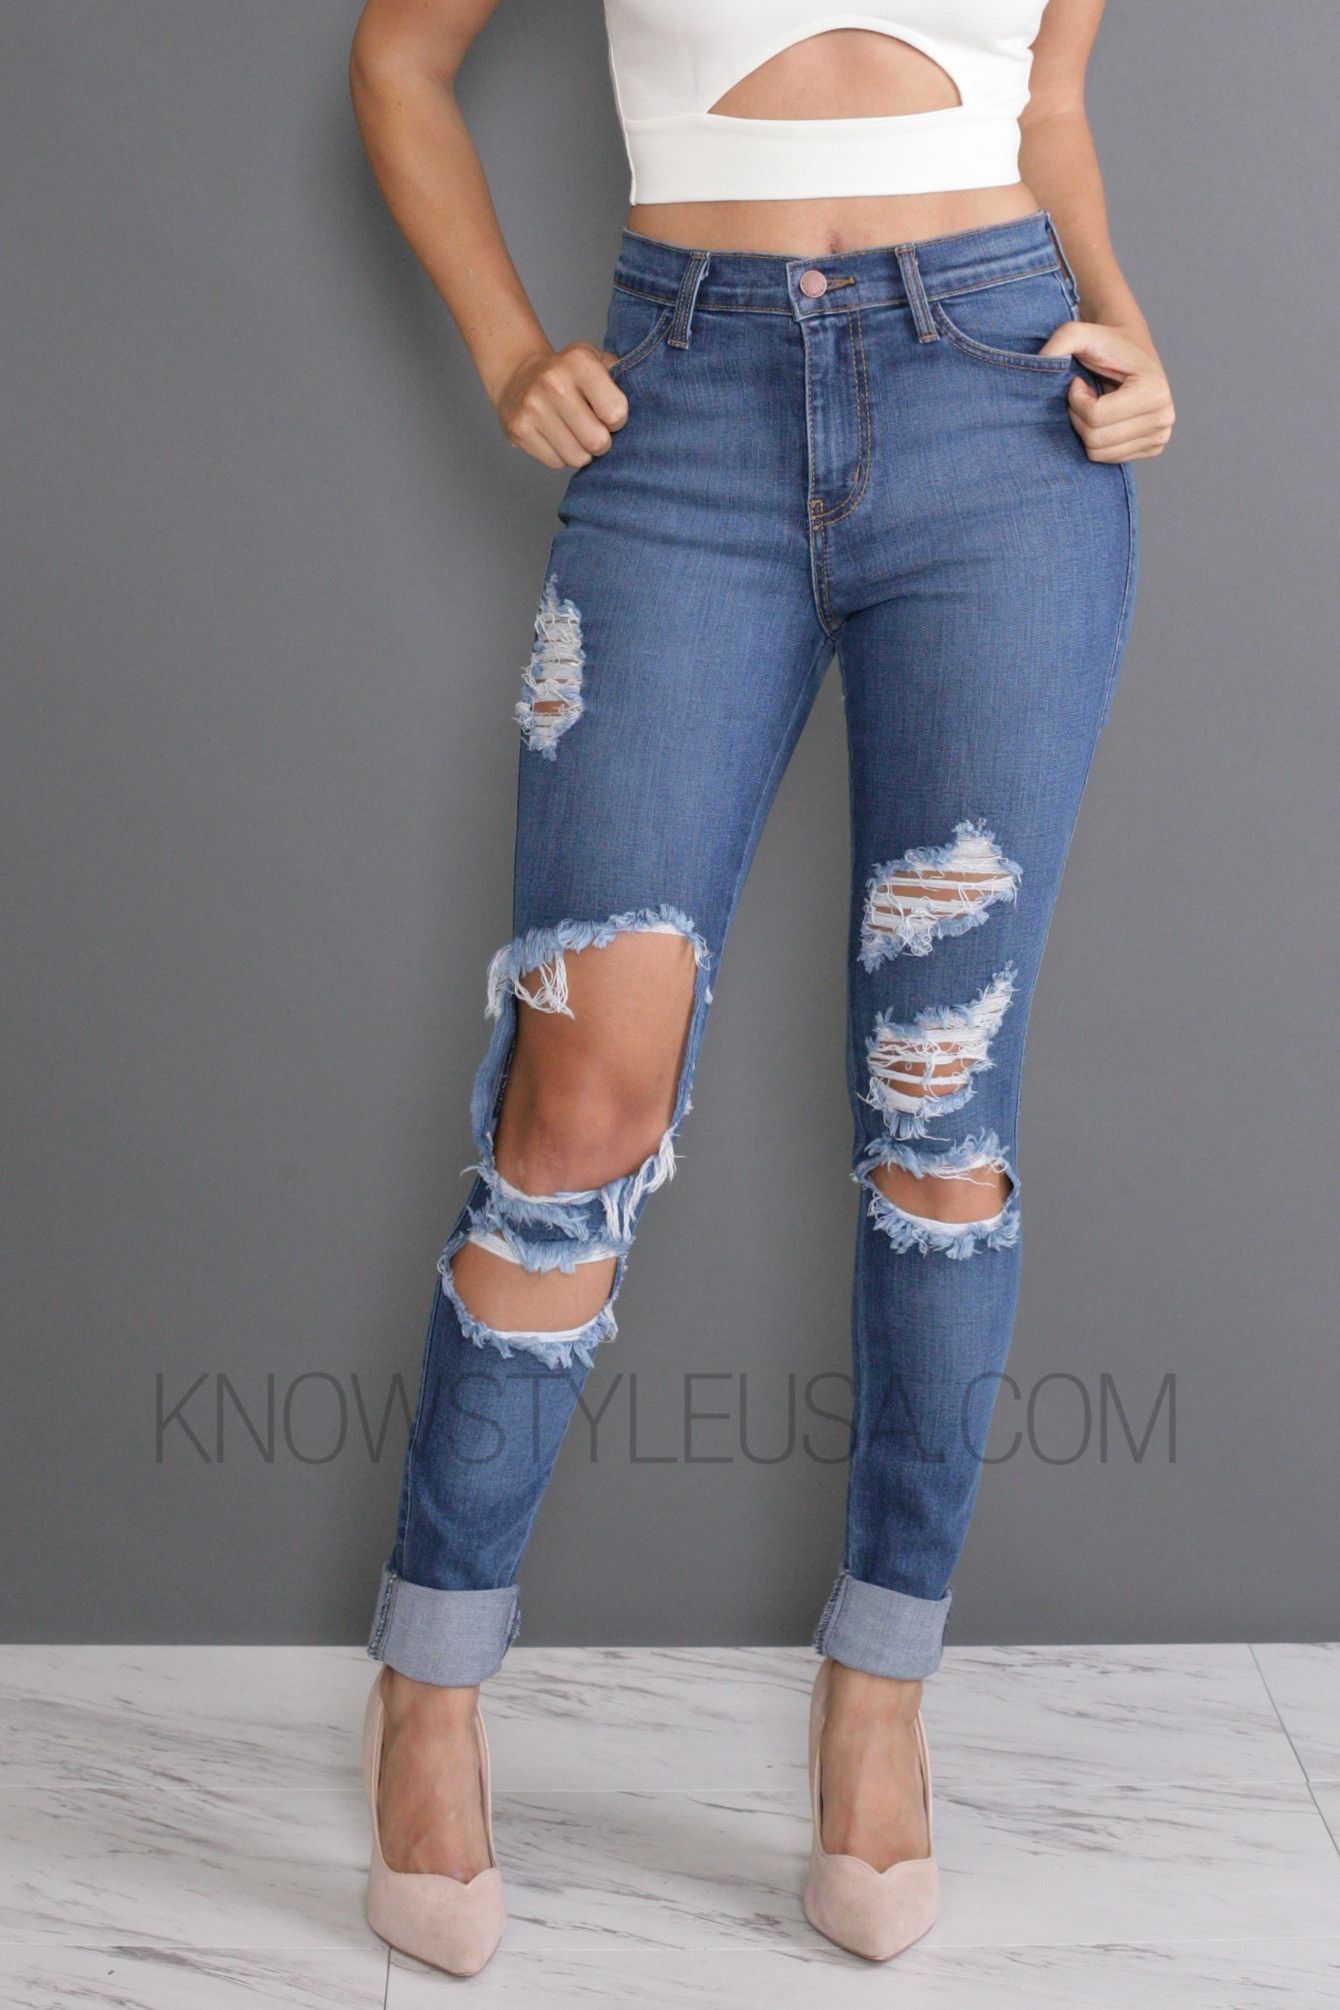 Feelin That Way Jeans Ripped Jeans Outfit Ripped Jeans Ripped Skinny Jeans